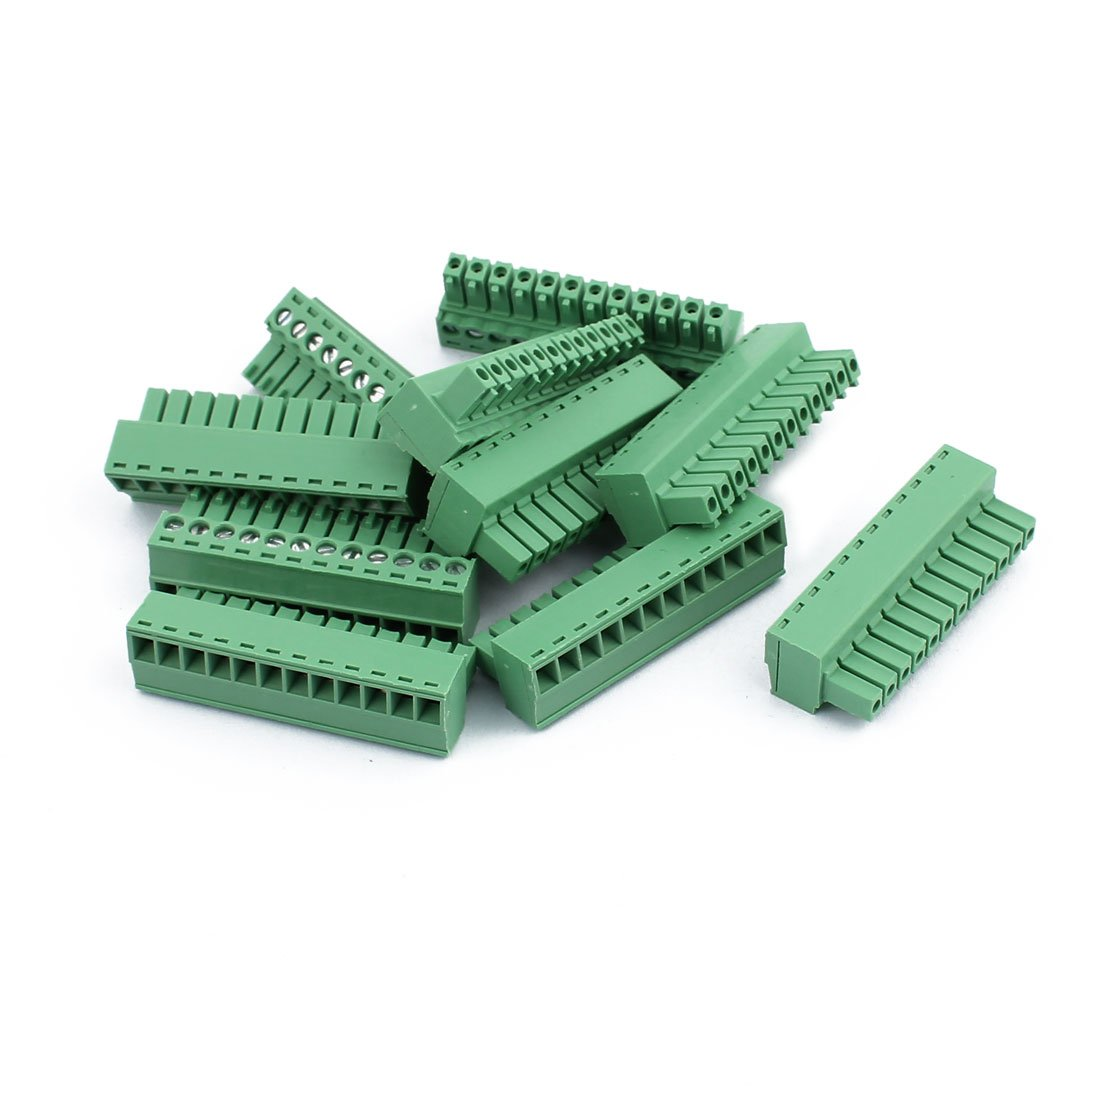 uxcell 10Pcs 300V KF2EDGK 3.65mm Pitch 12-Pin PCB Screw Terminal Block Connector